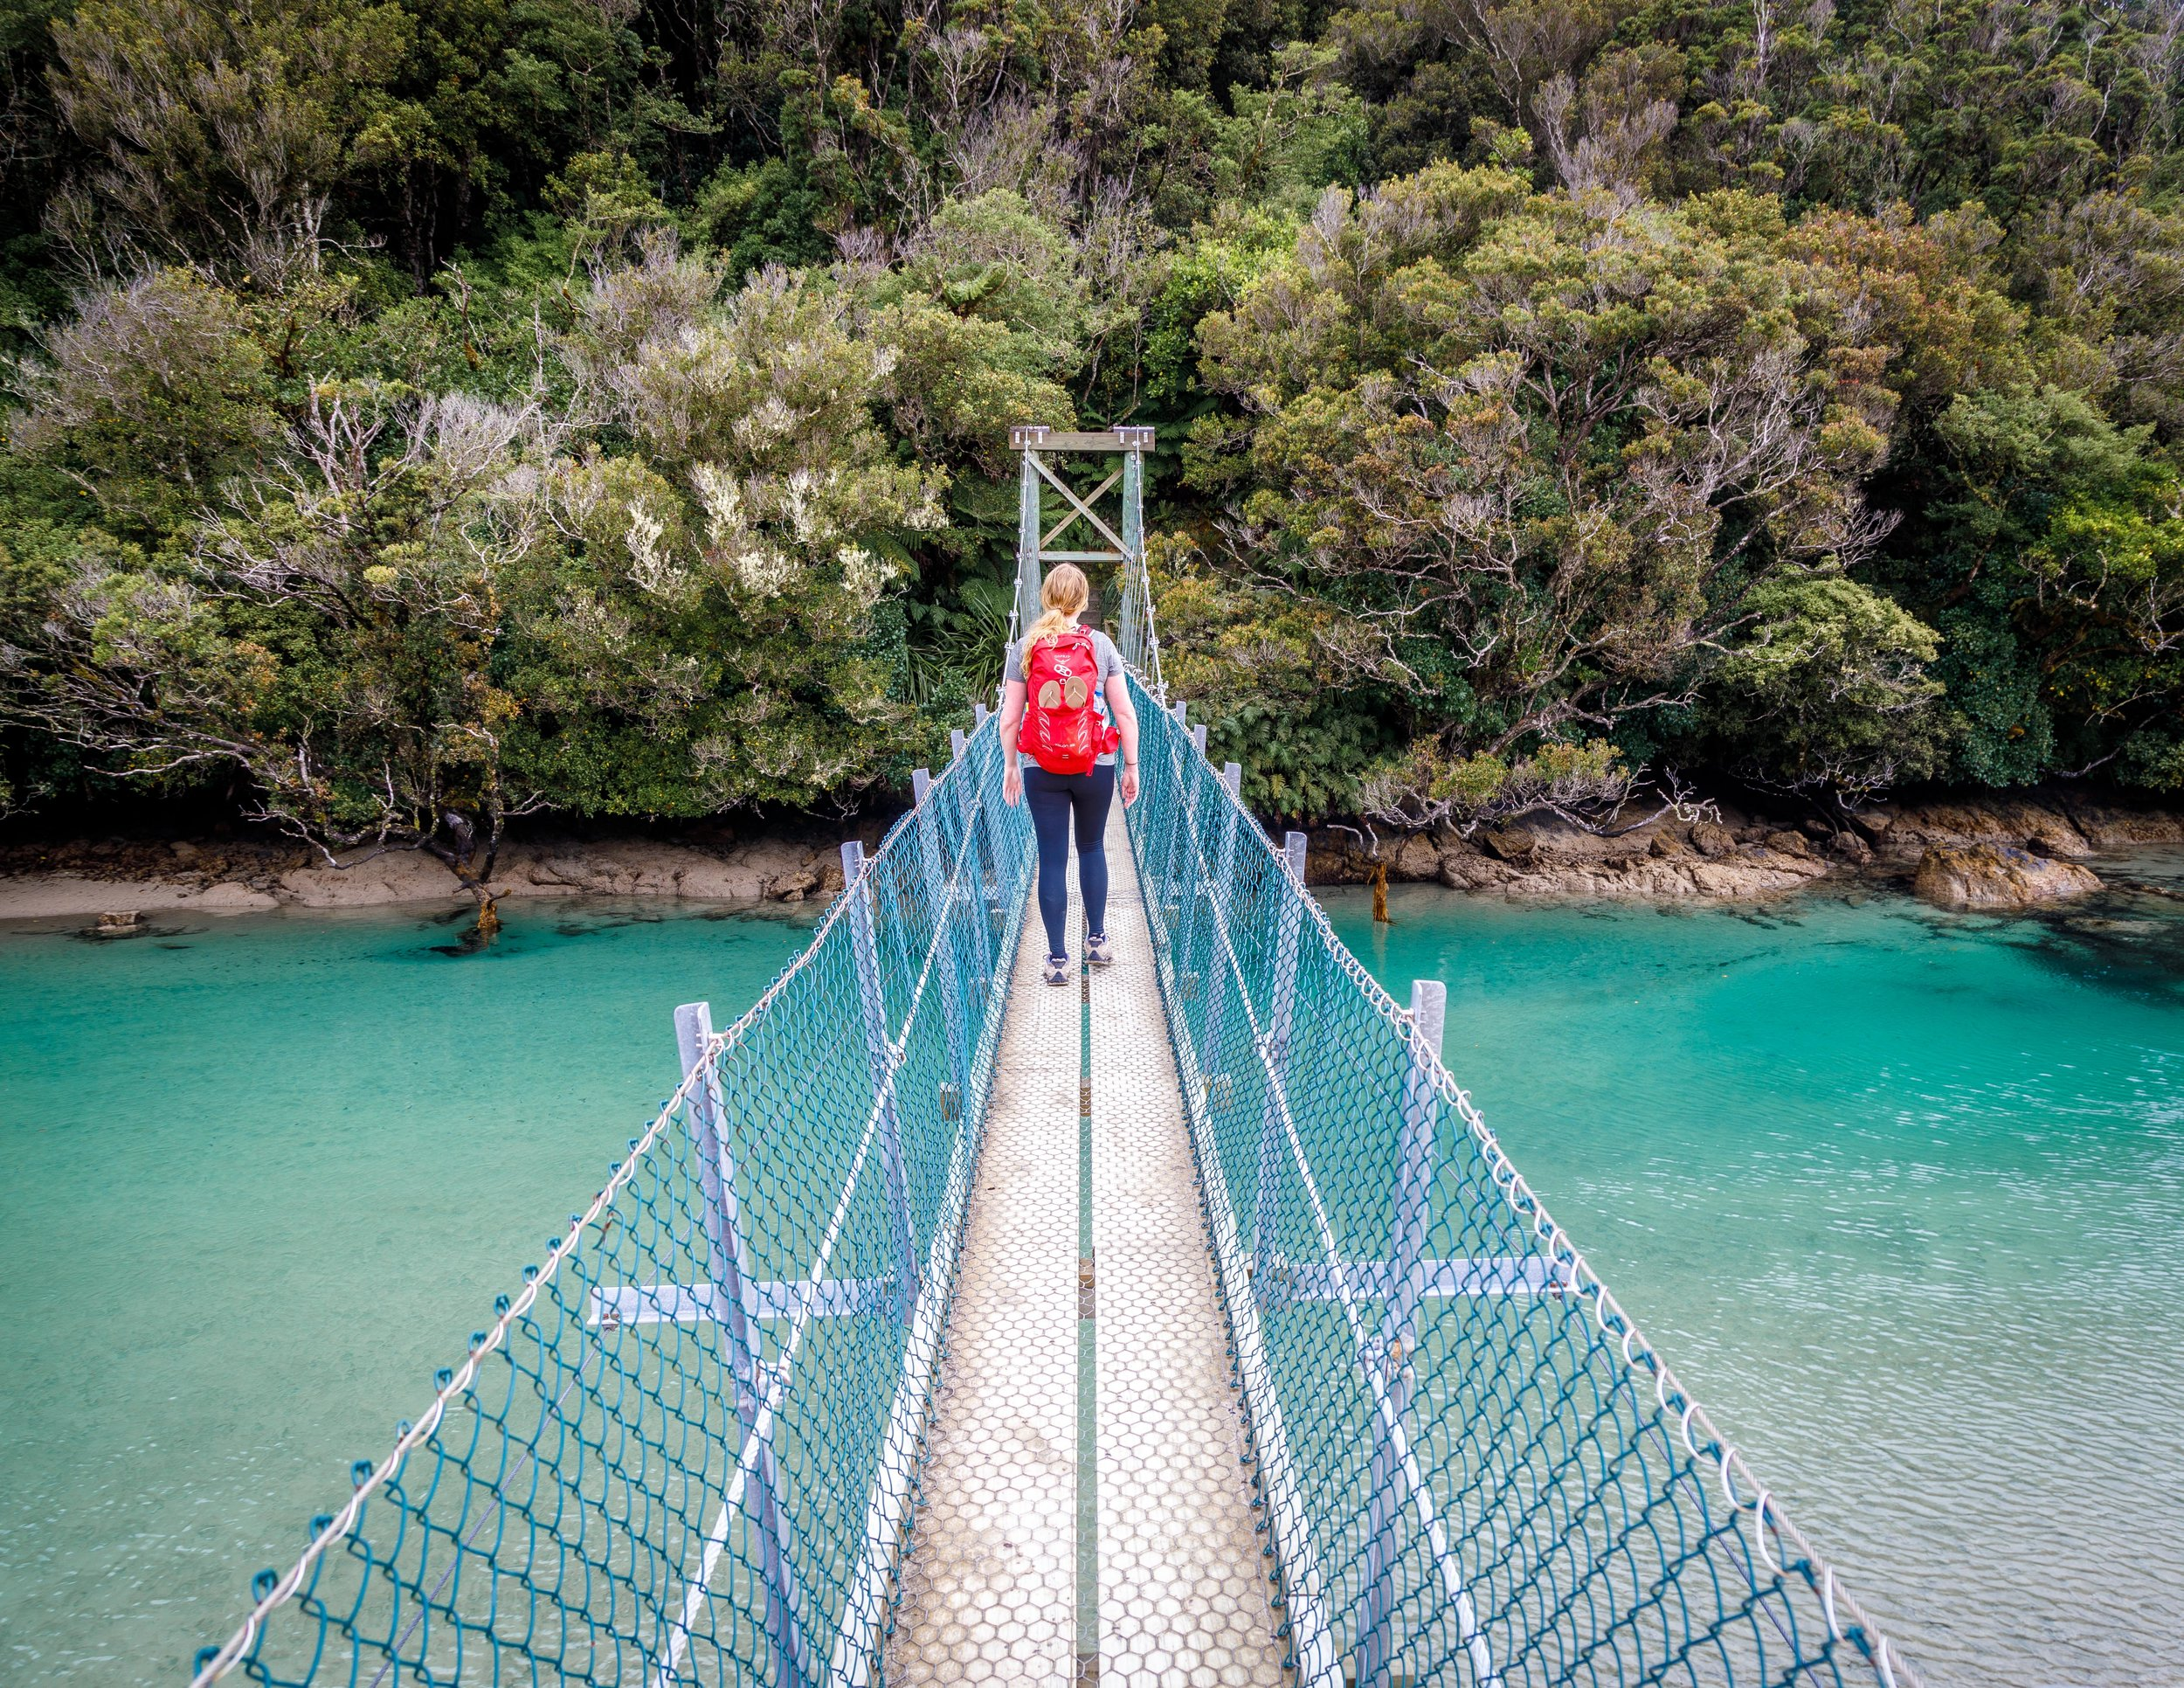 Suspension bridge on the Rakiura Track, Stewart Island